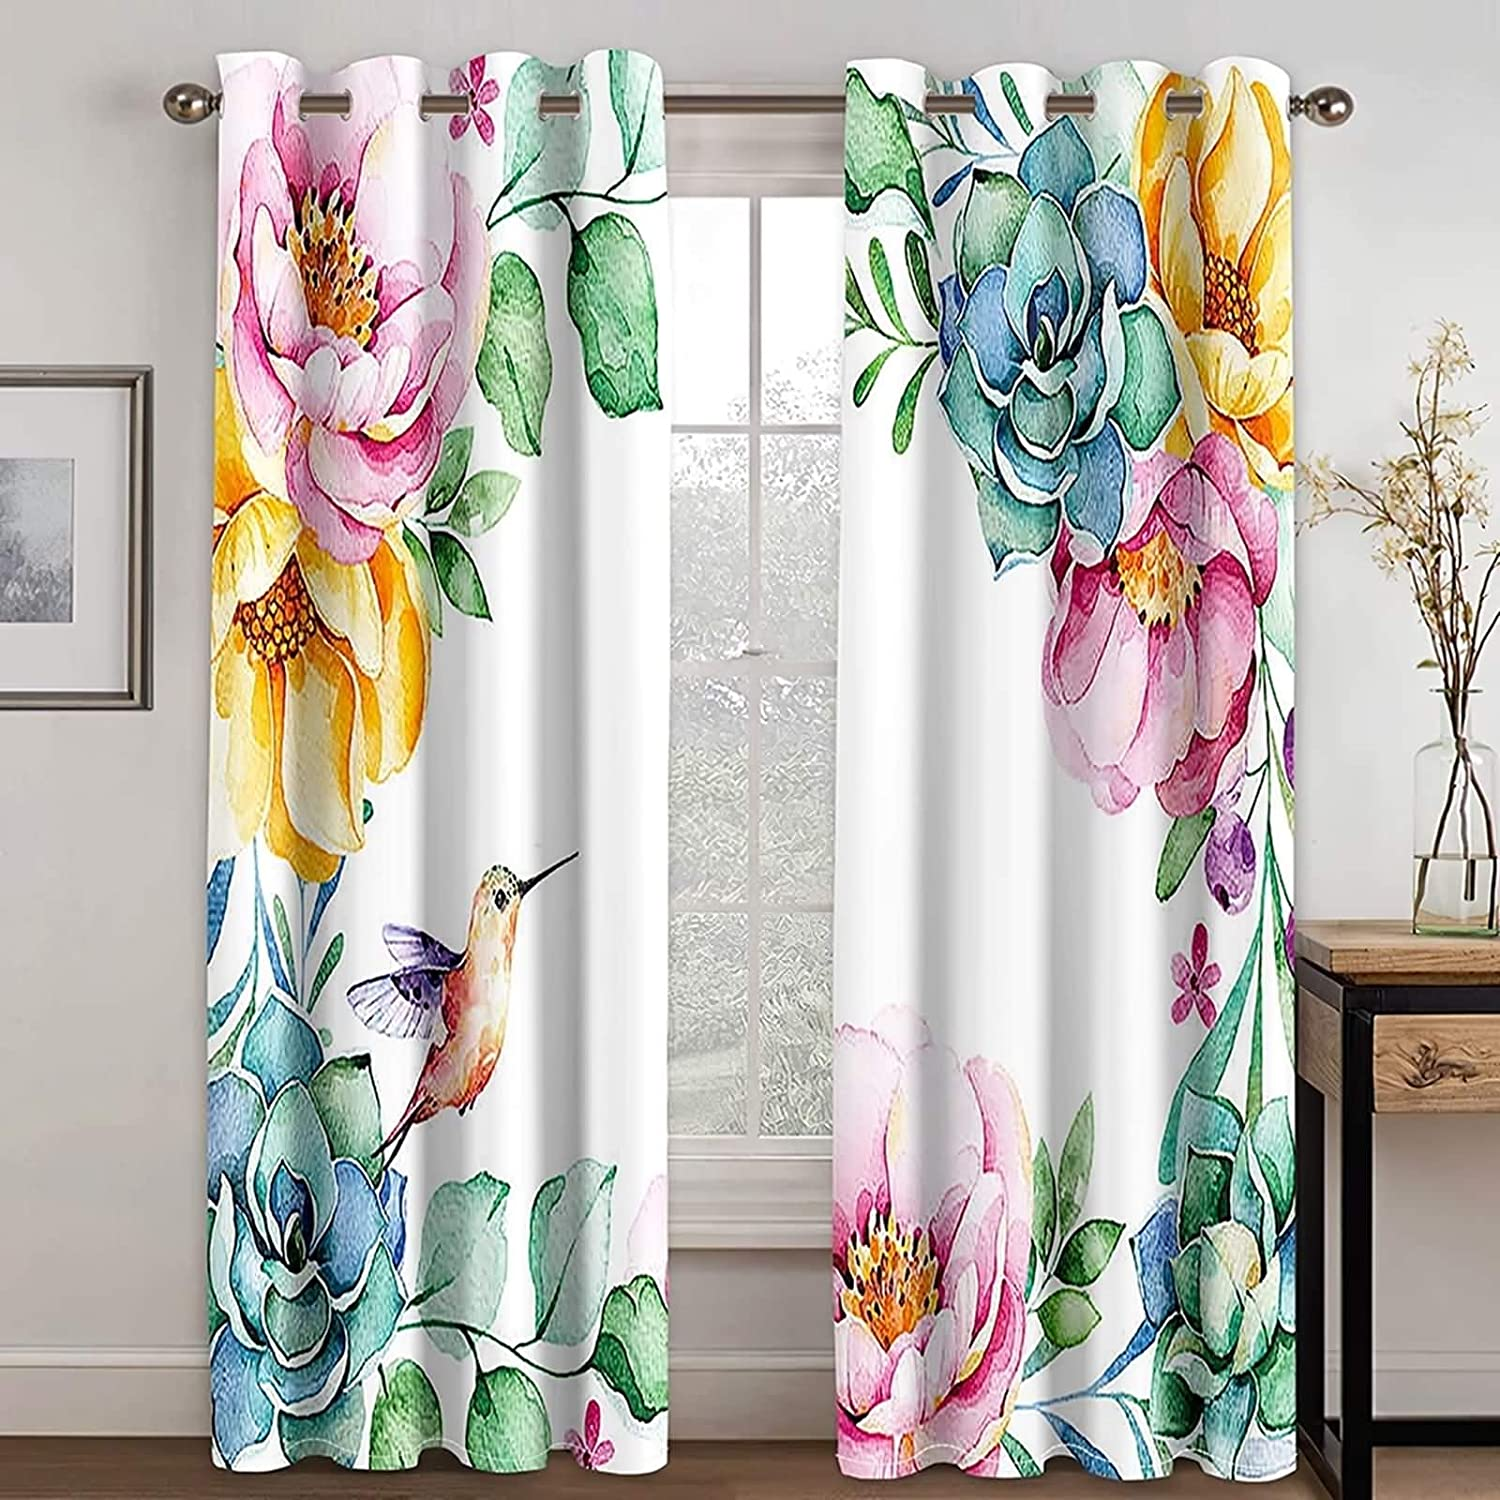 Daesar Bombing new work Curtains 4 years warranty for Bedroom 2 Room Panels Living K and